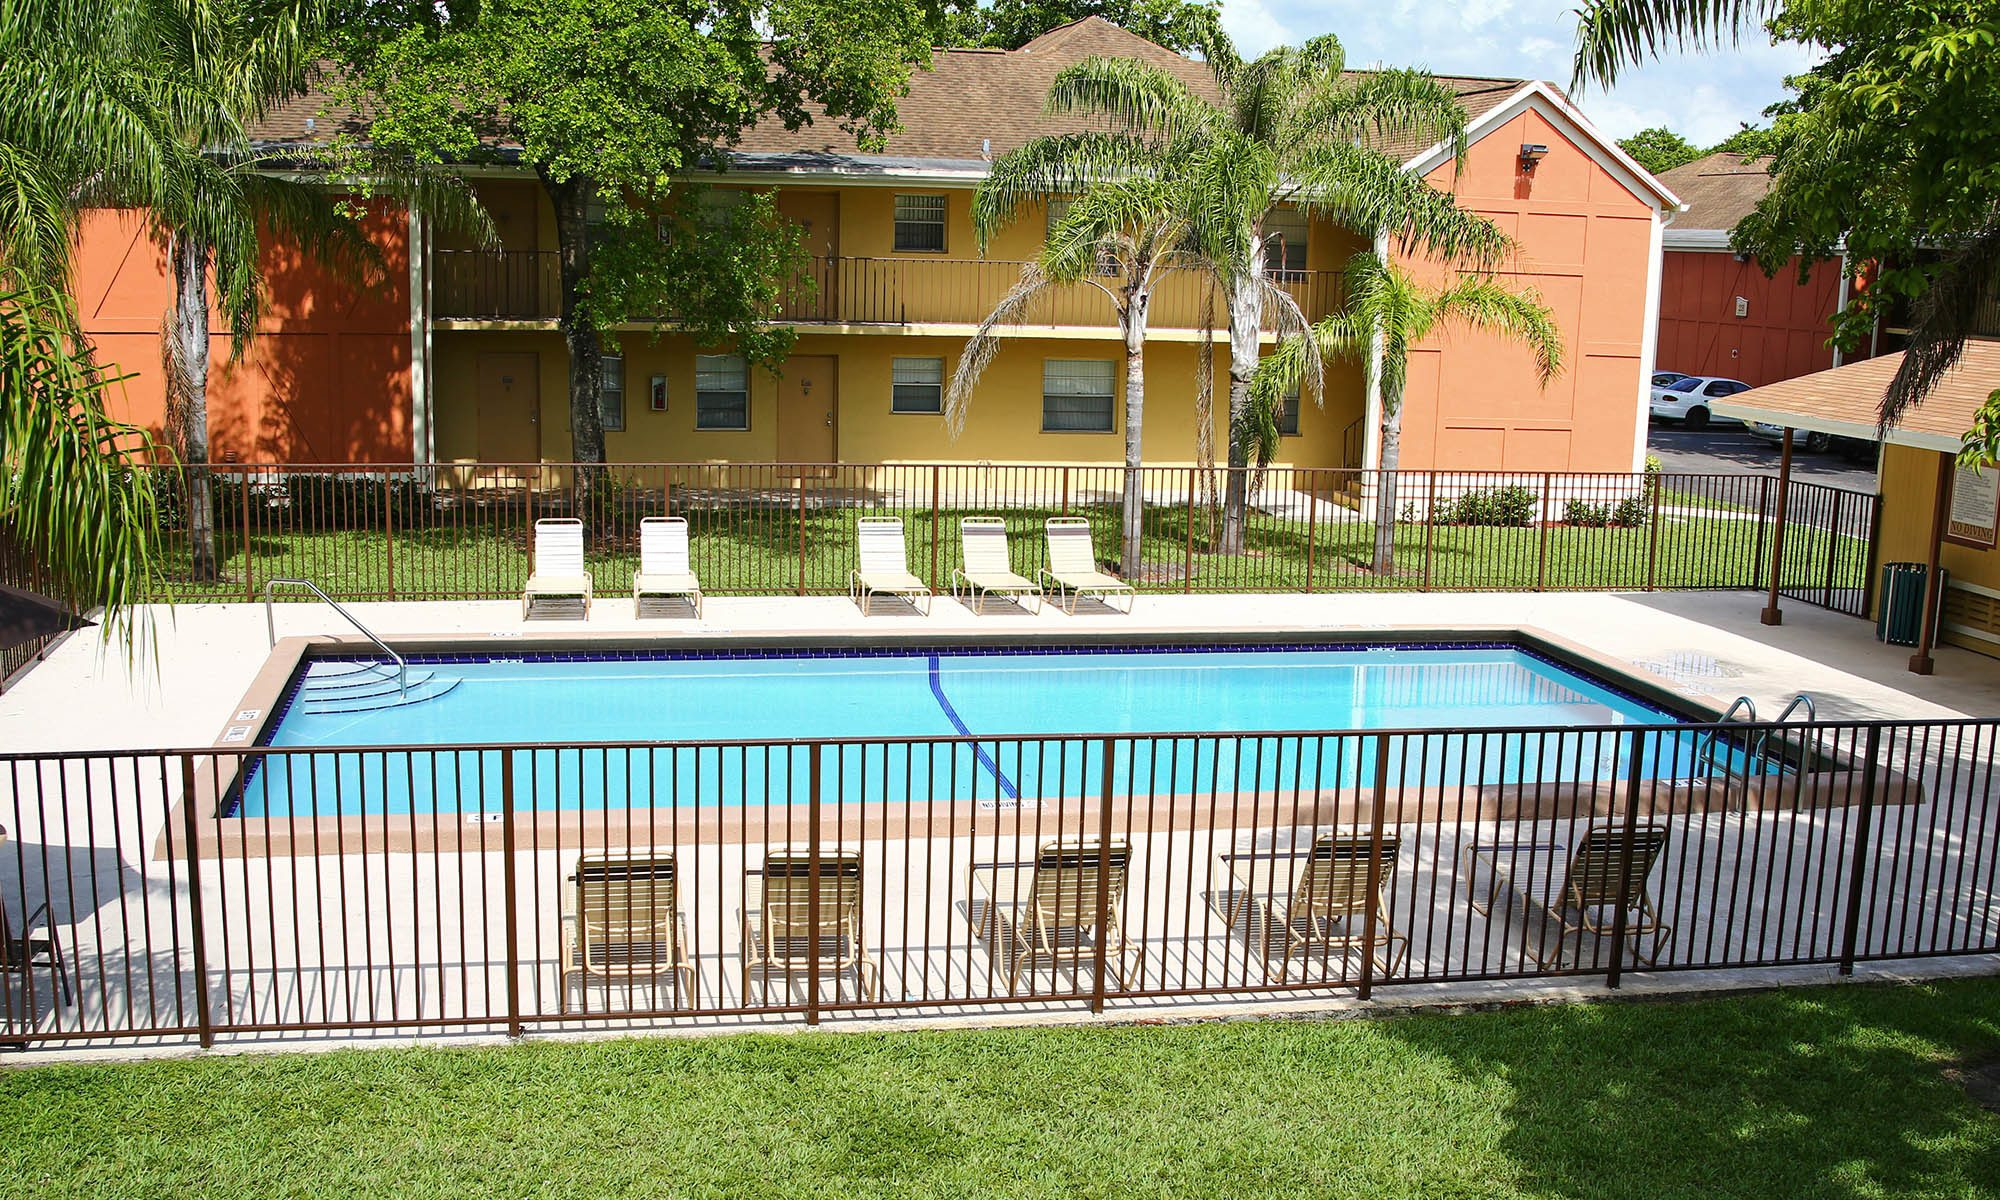 Apartments in Pembroke Pines, FL